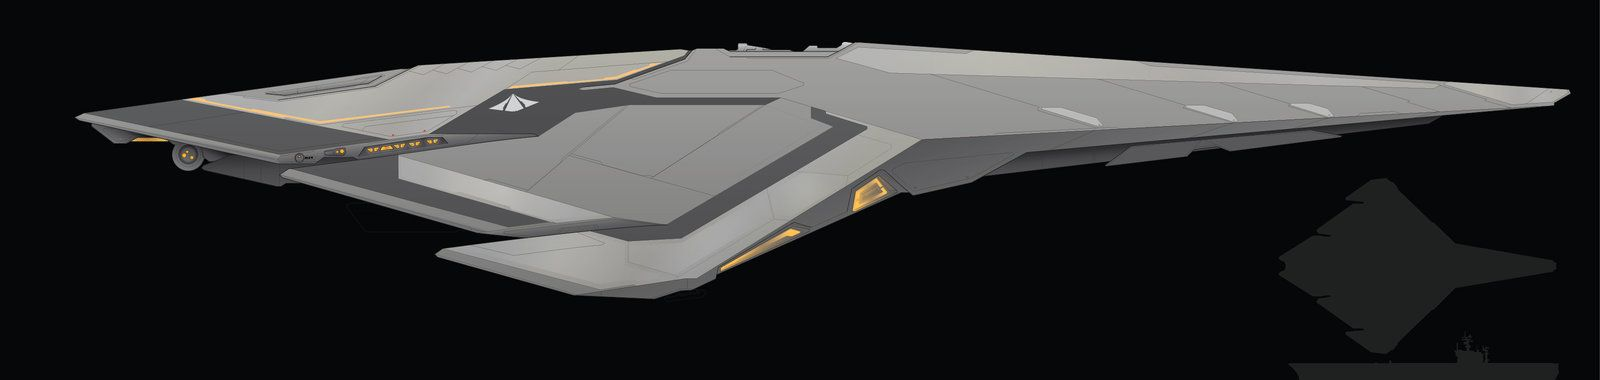 Starwolf-Class Fast Attack Stealth Cutter WIP by ChroniclesofMan